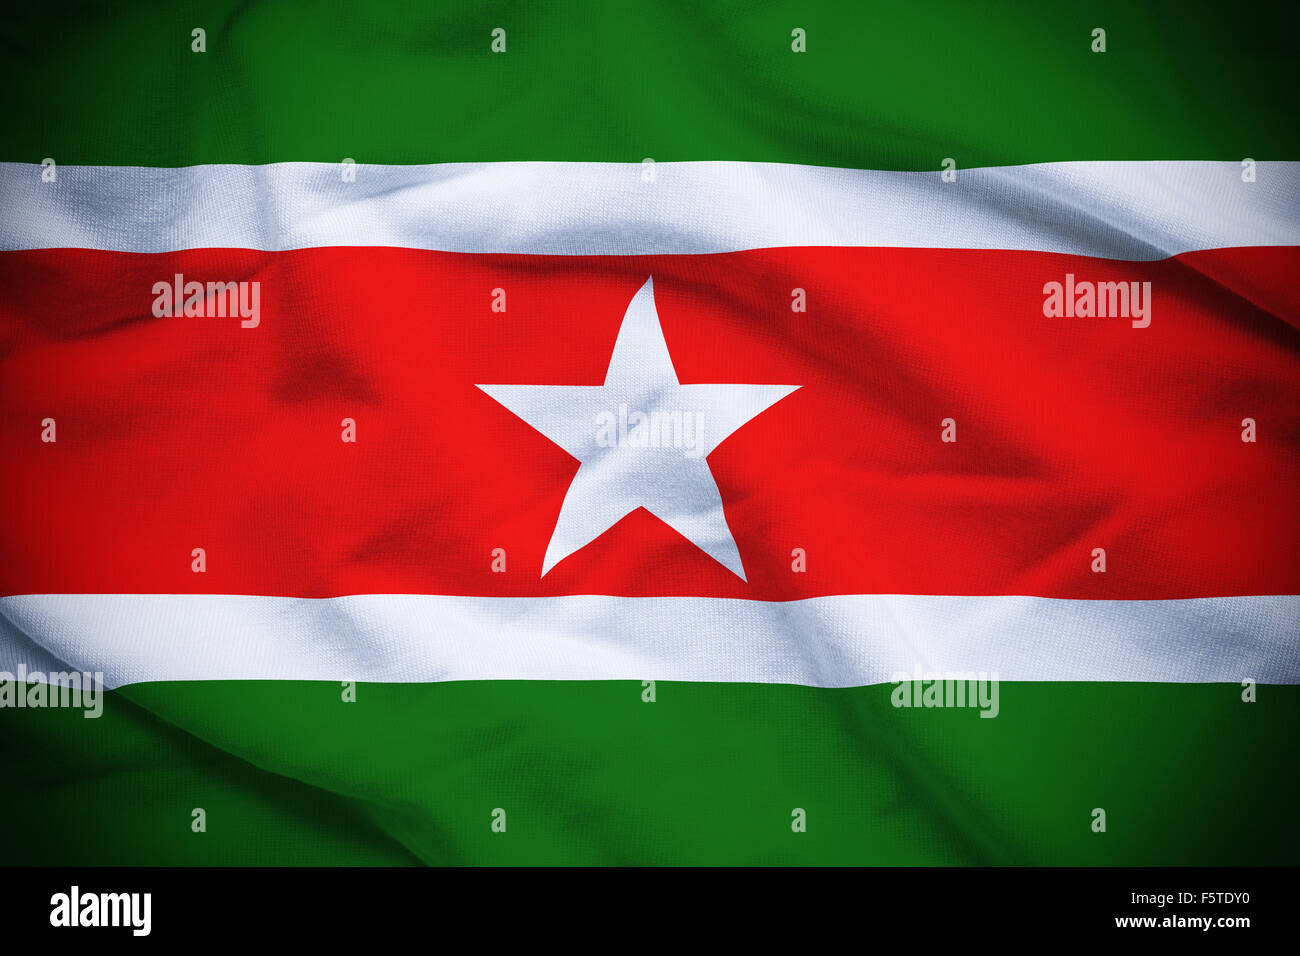 Wavy and rippled national flag of Suriname background. - Stock Image